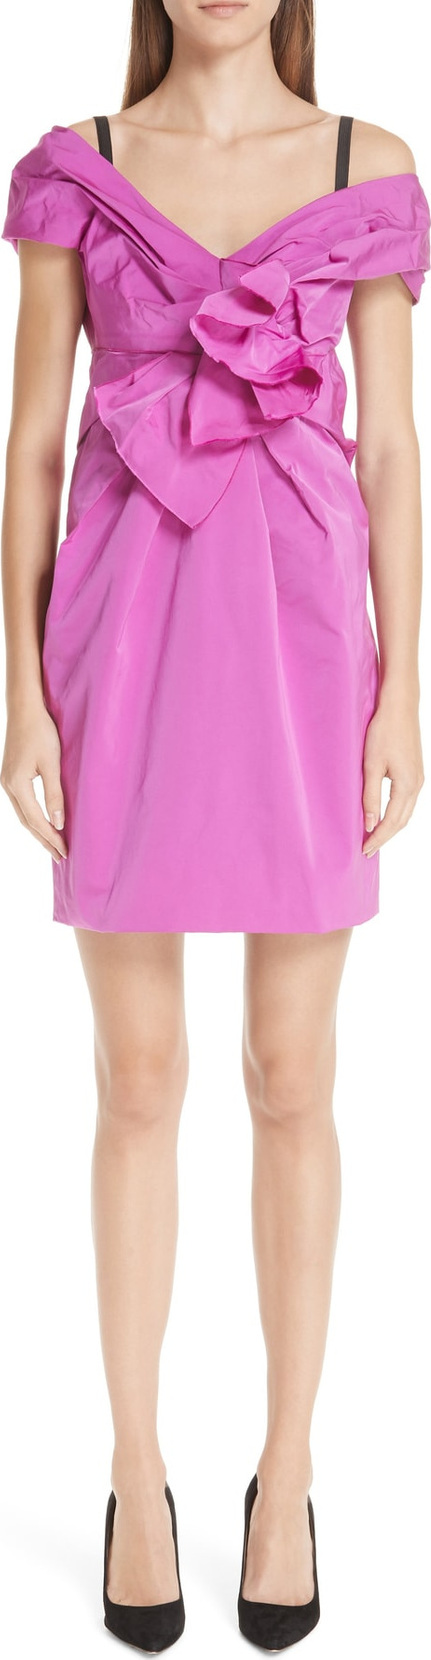 MARC JACOBS Taffeta Off the Shoulder Dress